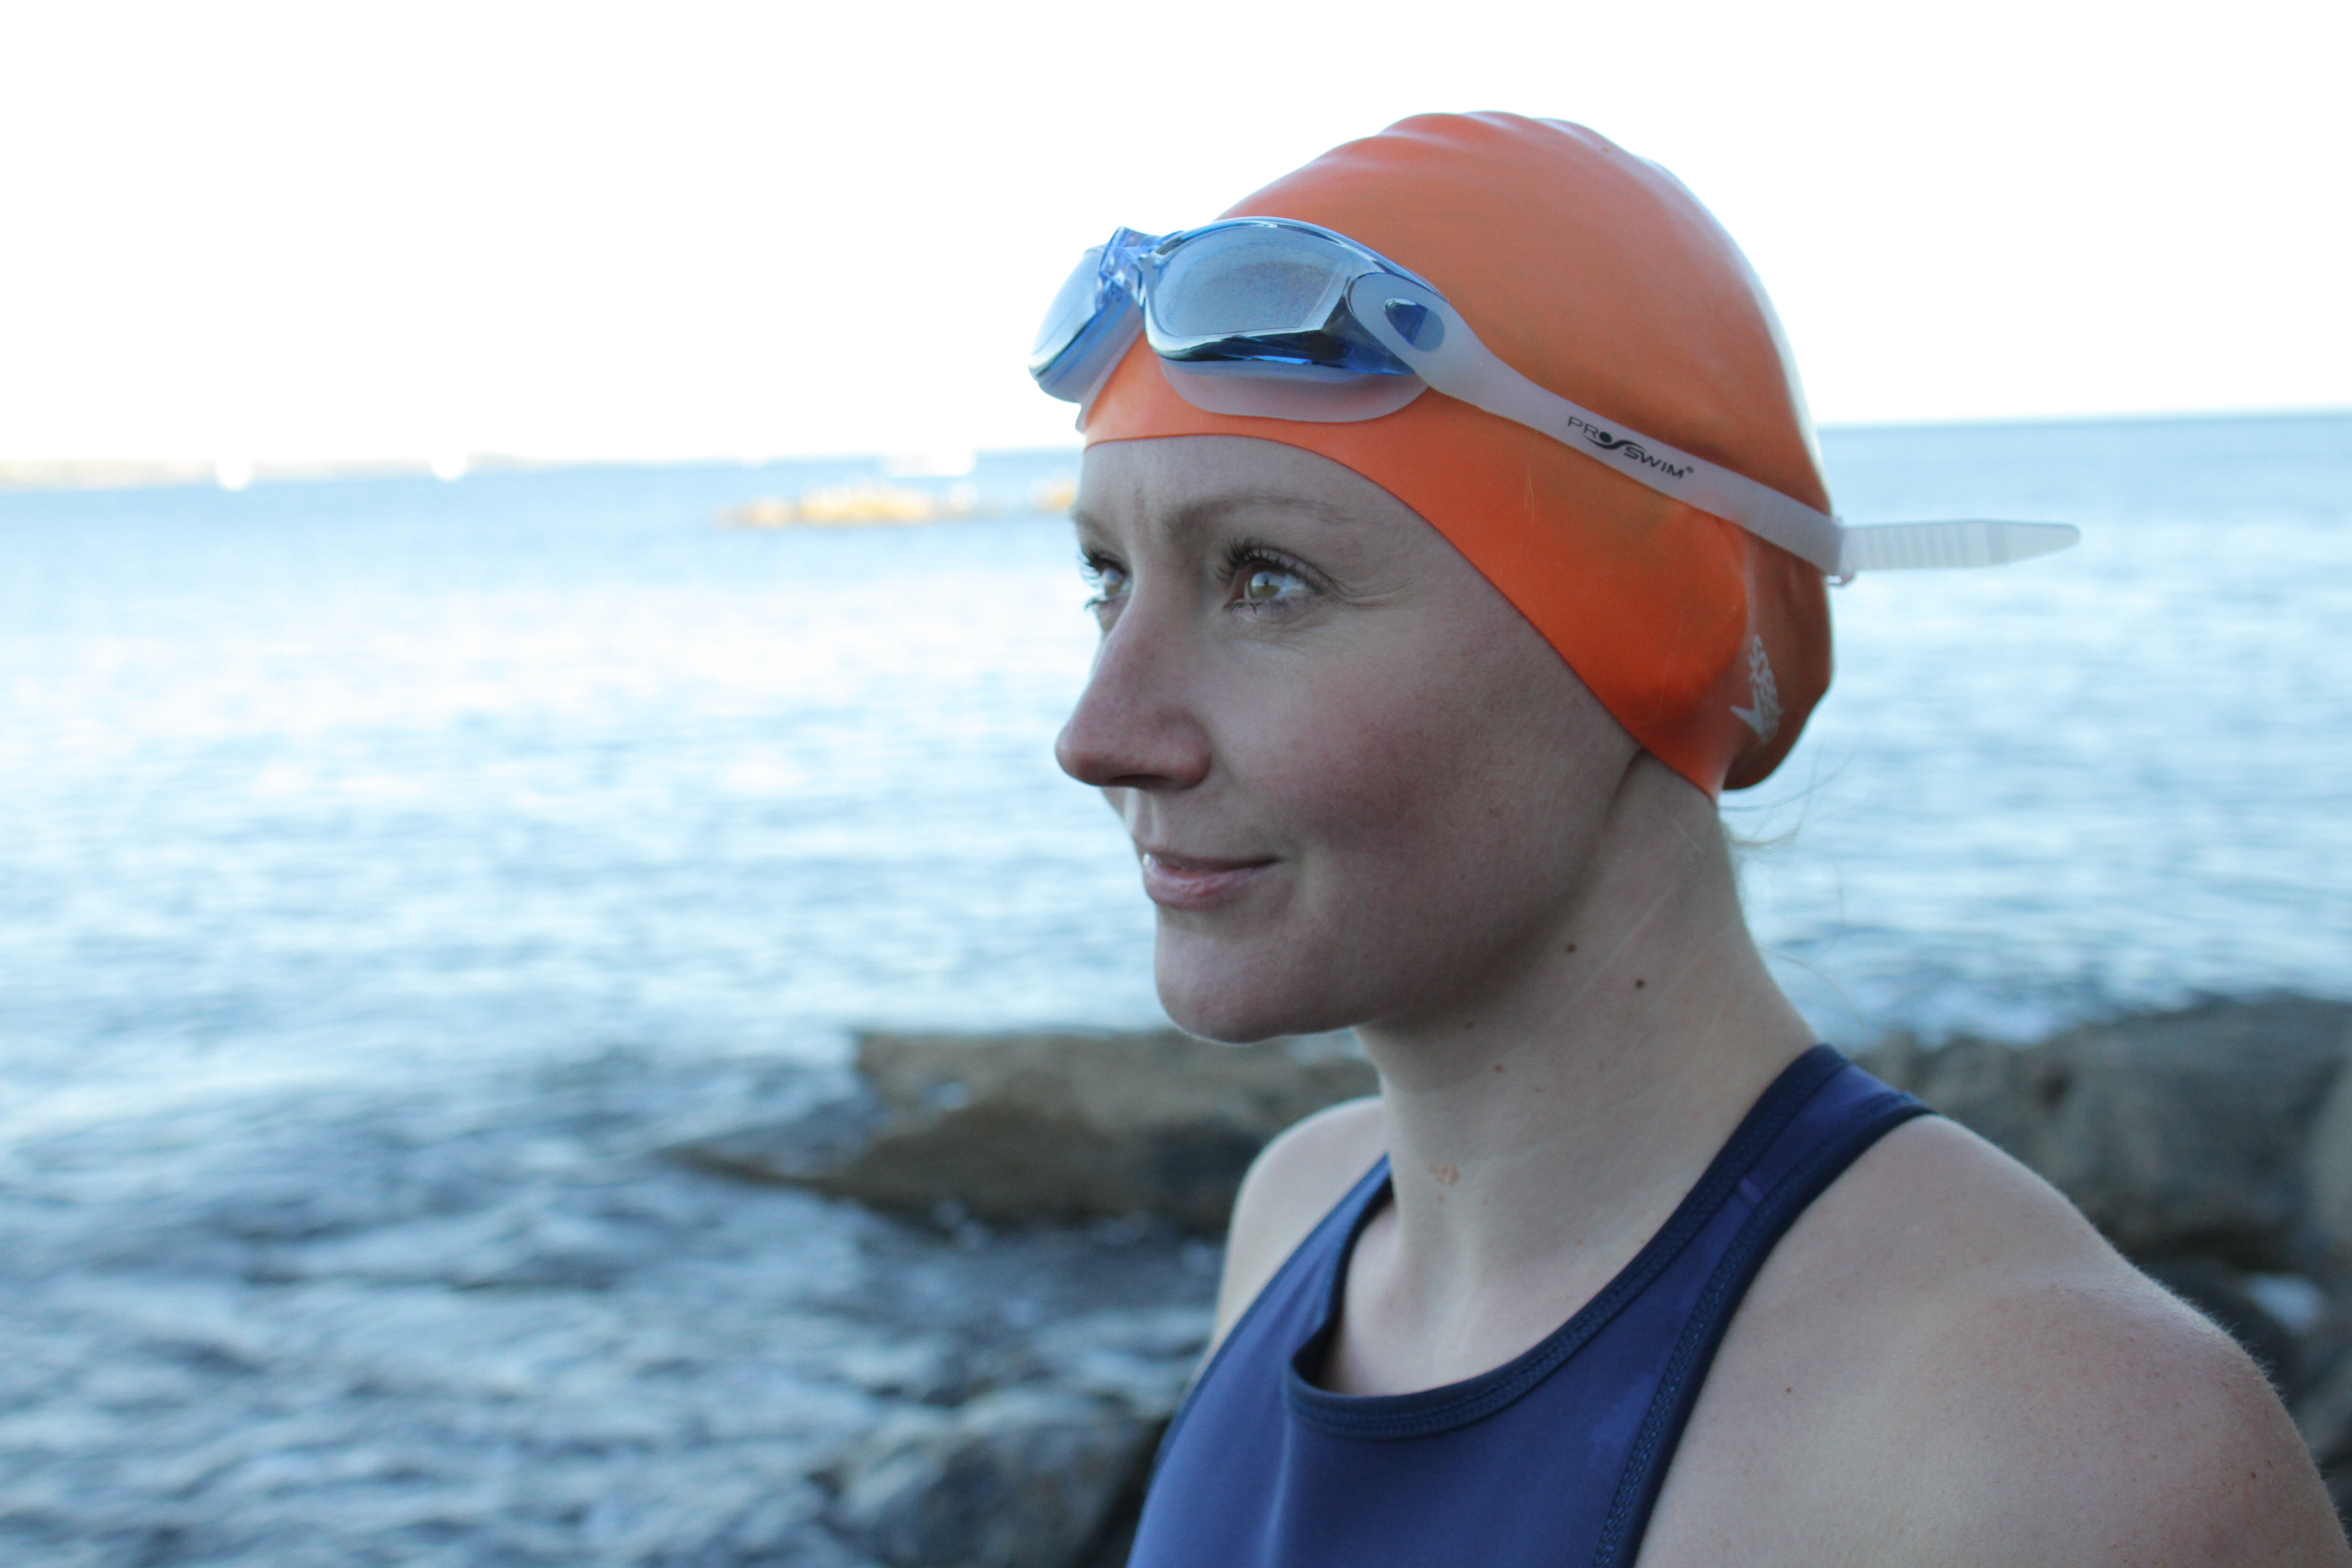 Katie in swimming hat and goggles with the sea as a background